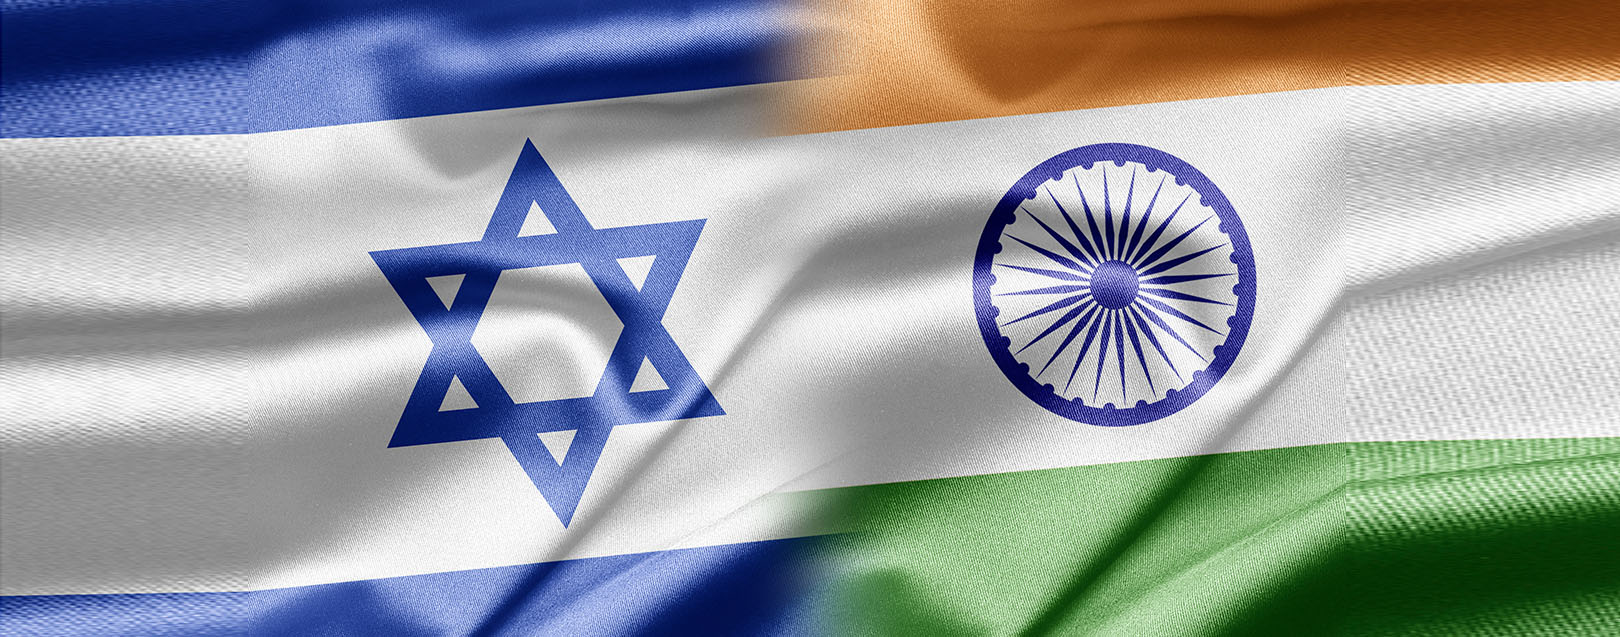 India to buy $2 billion missile systems from Israel